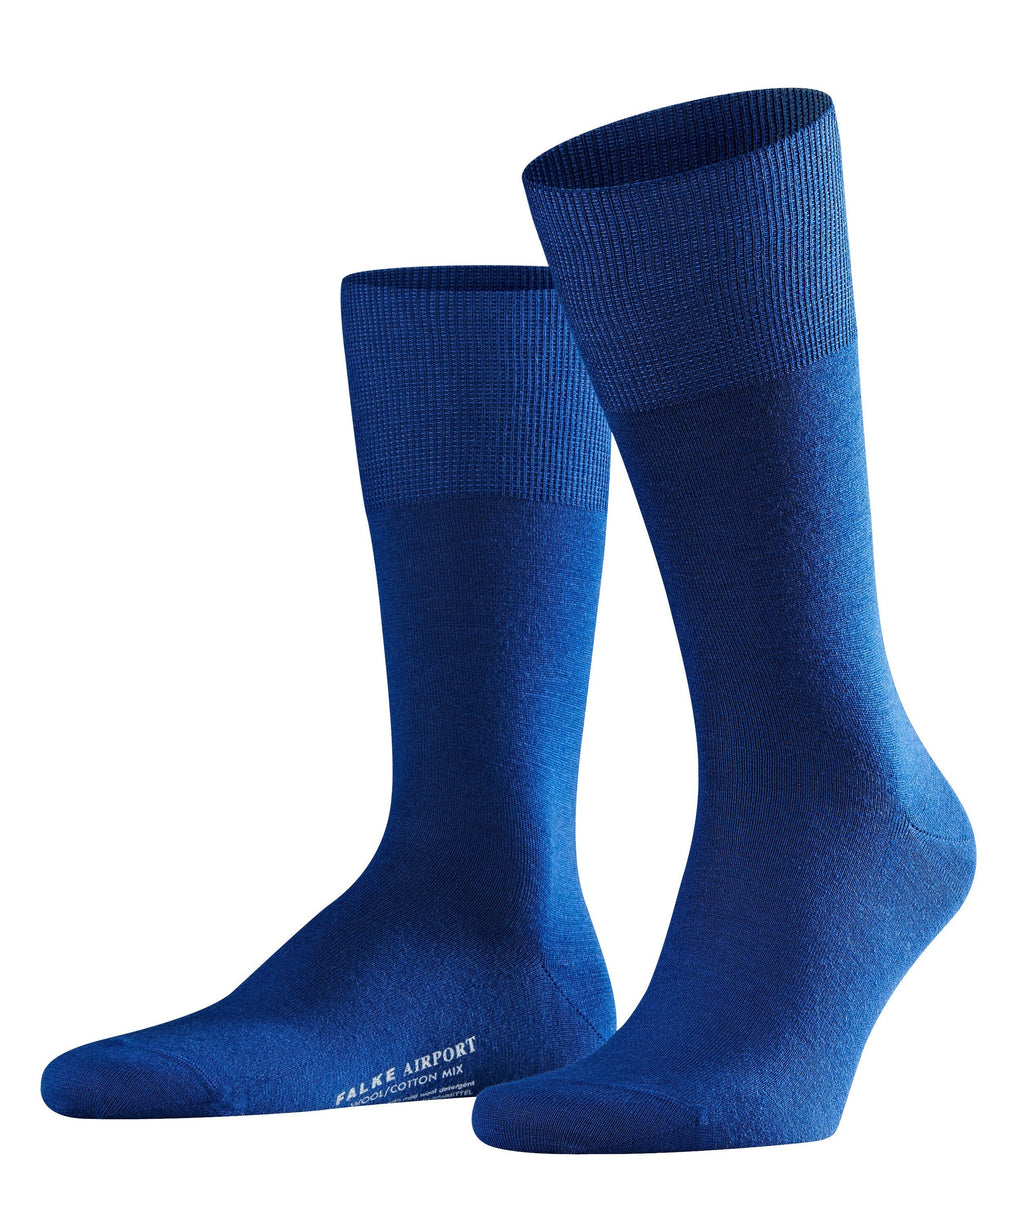 Sosete FALKE Airport royal blue - ISAYAA